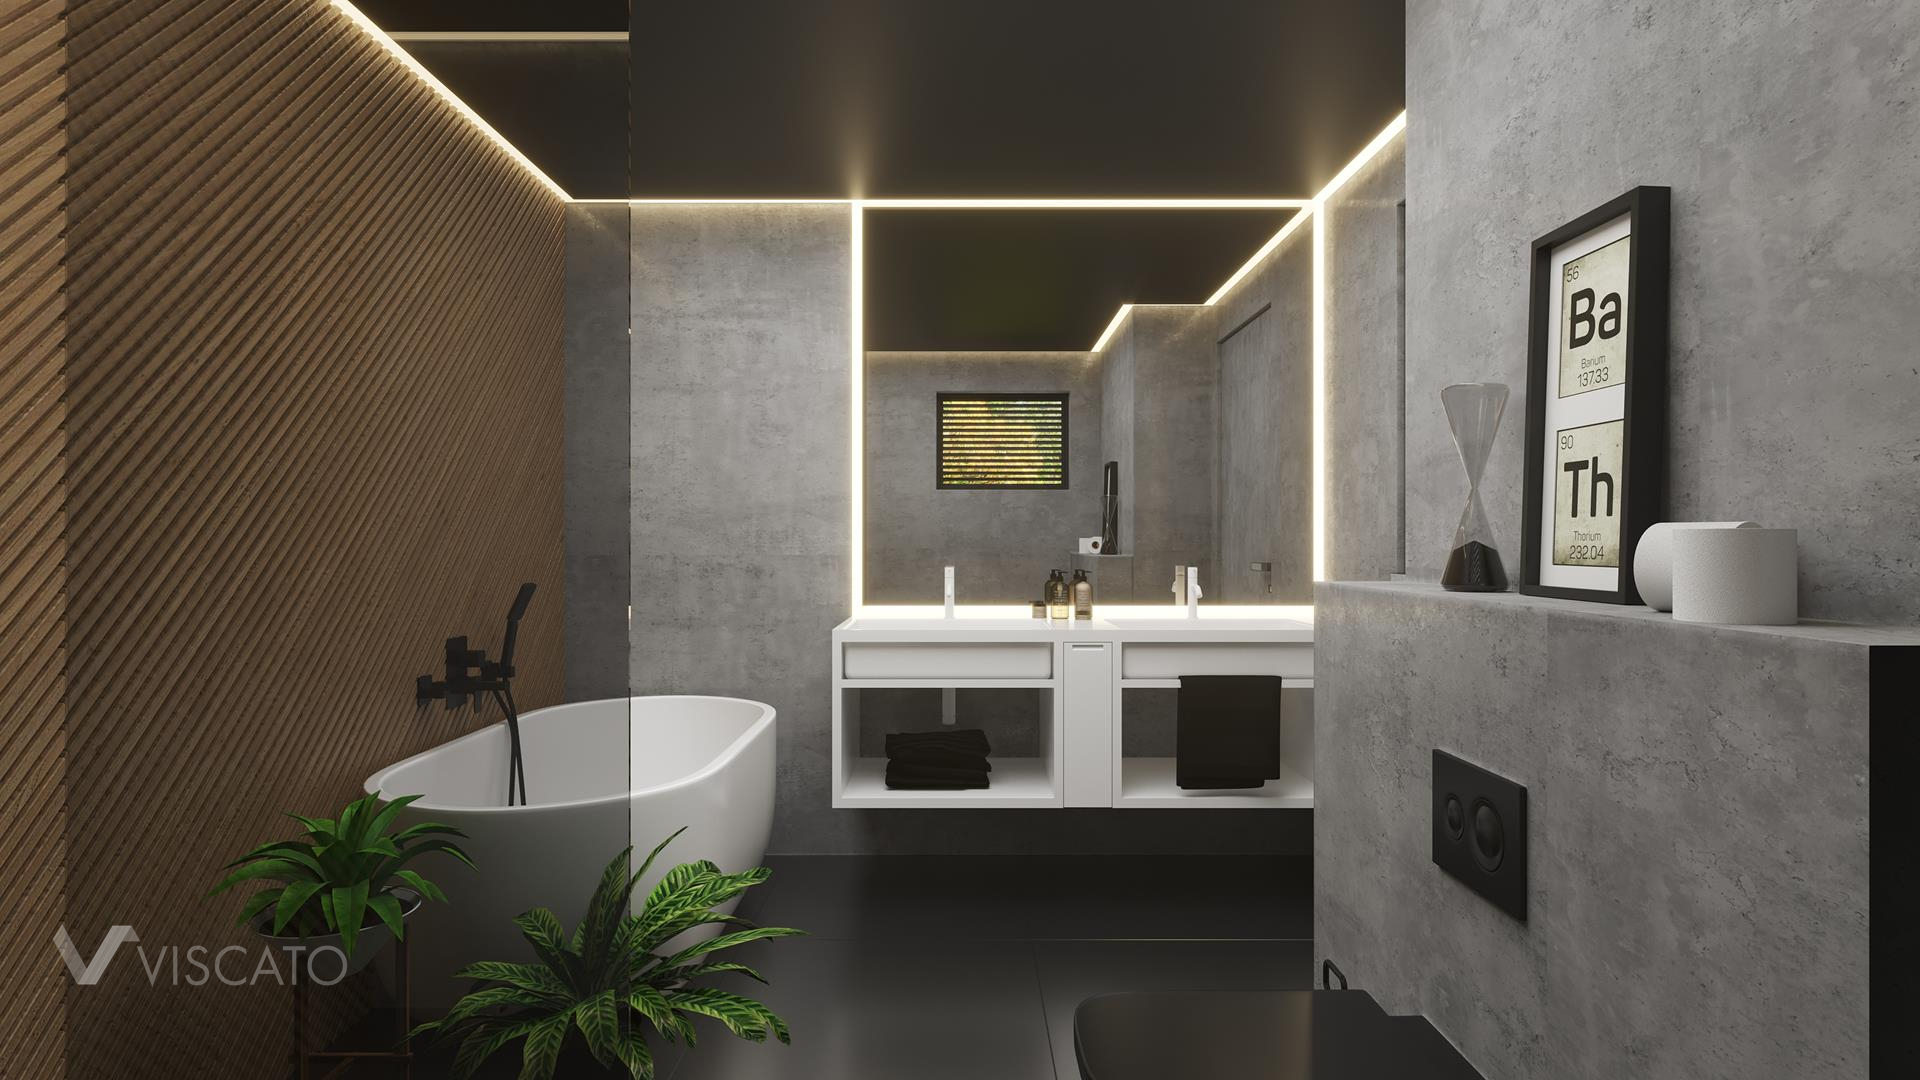 Bathroom interior, Viscato 3D